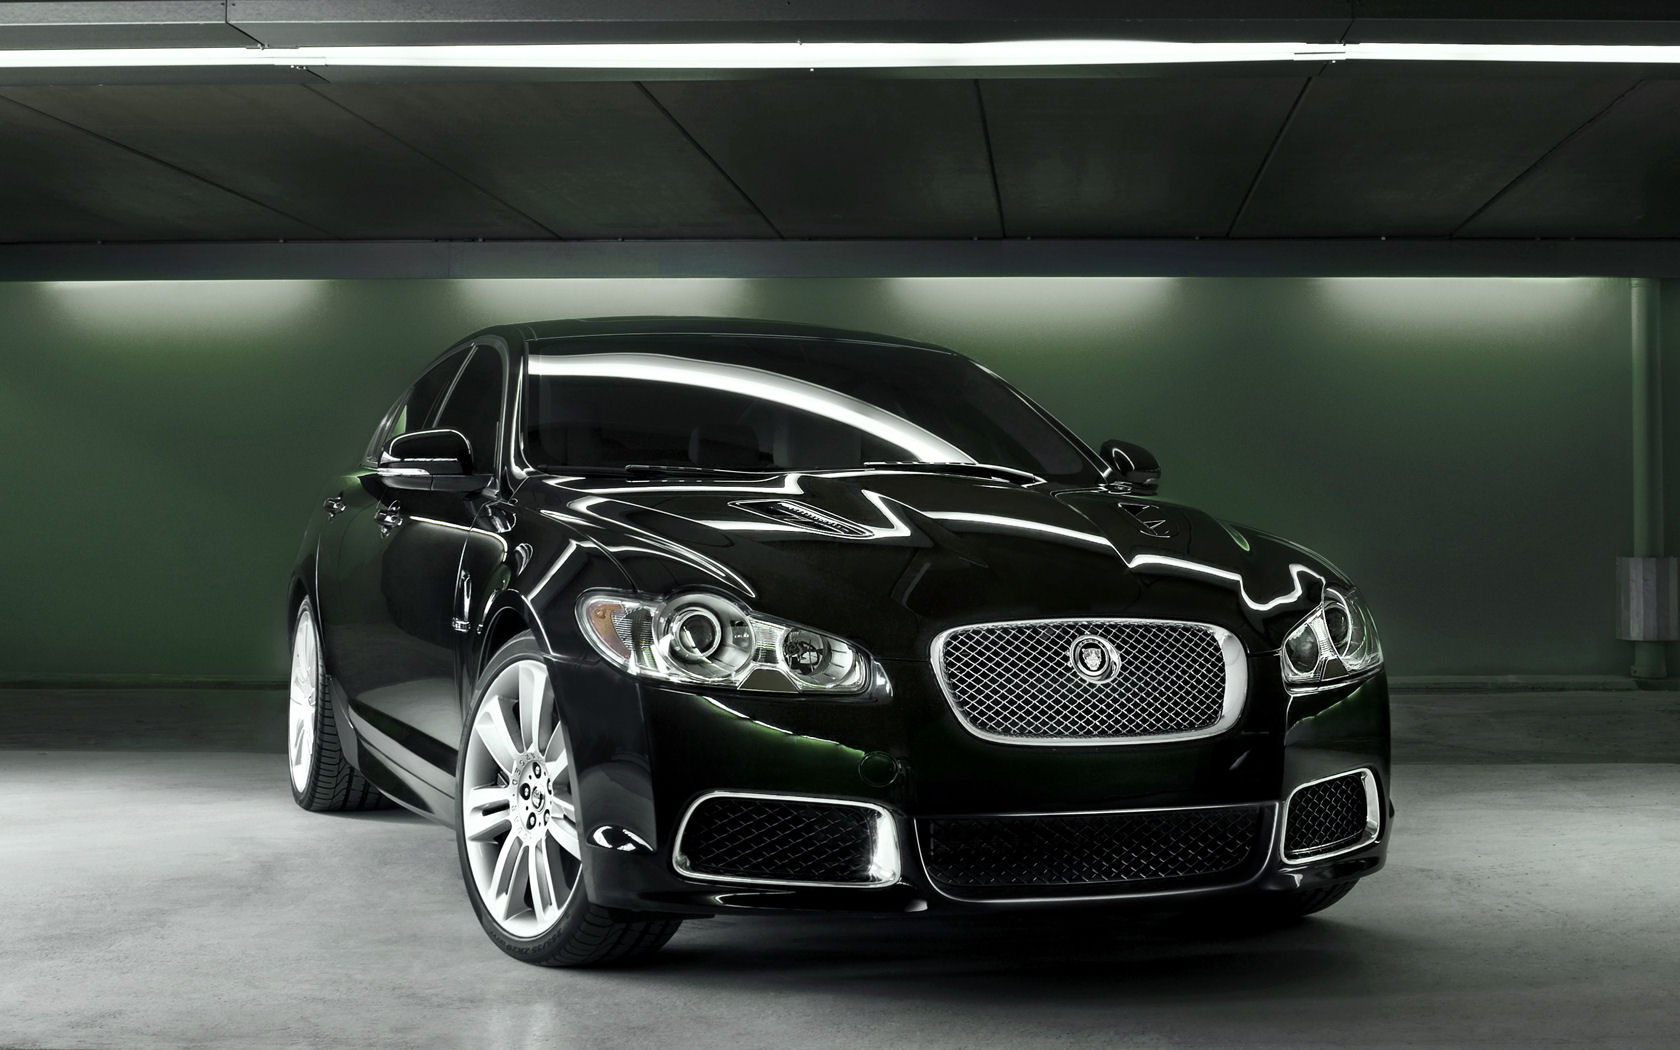 jaguar xf 4.2, 5.0 supercharged, xfr - free widescreen wallpaper